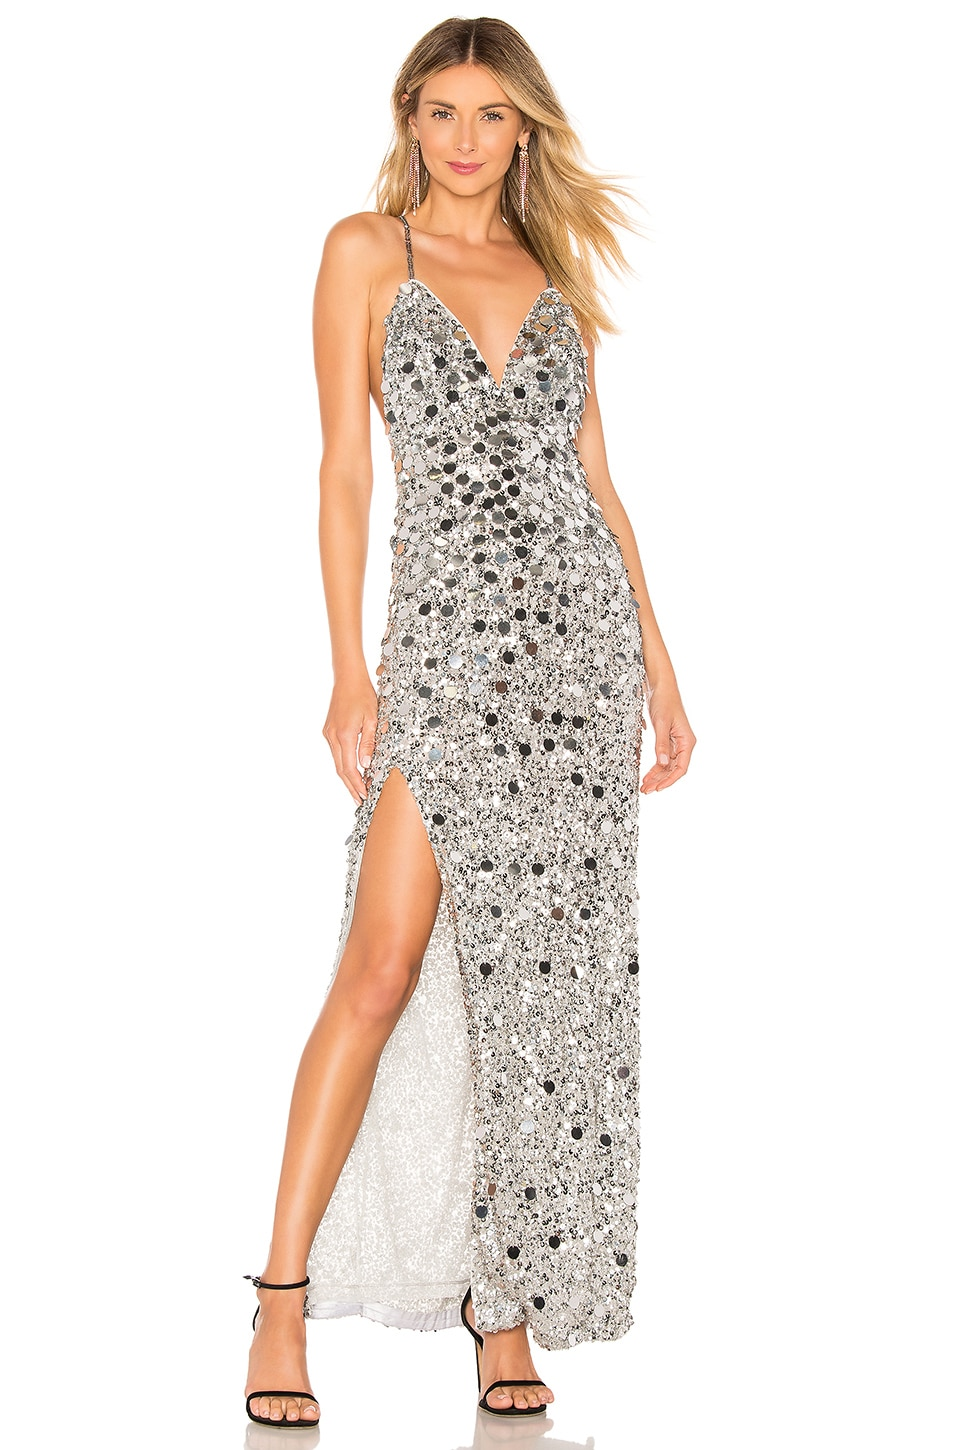 X by NBD Presley Embellished Gown in Silver